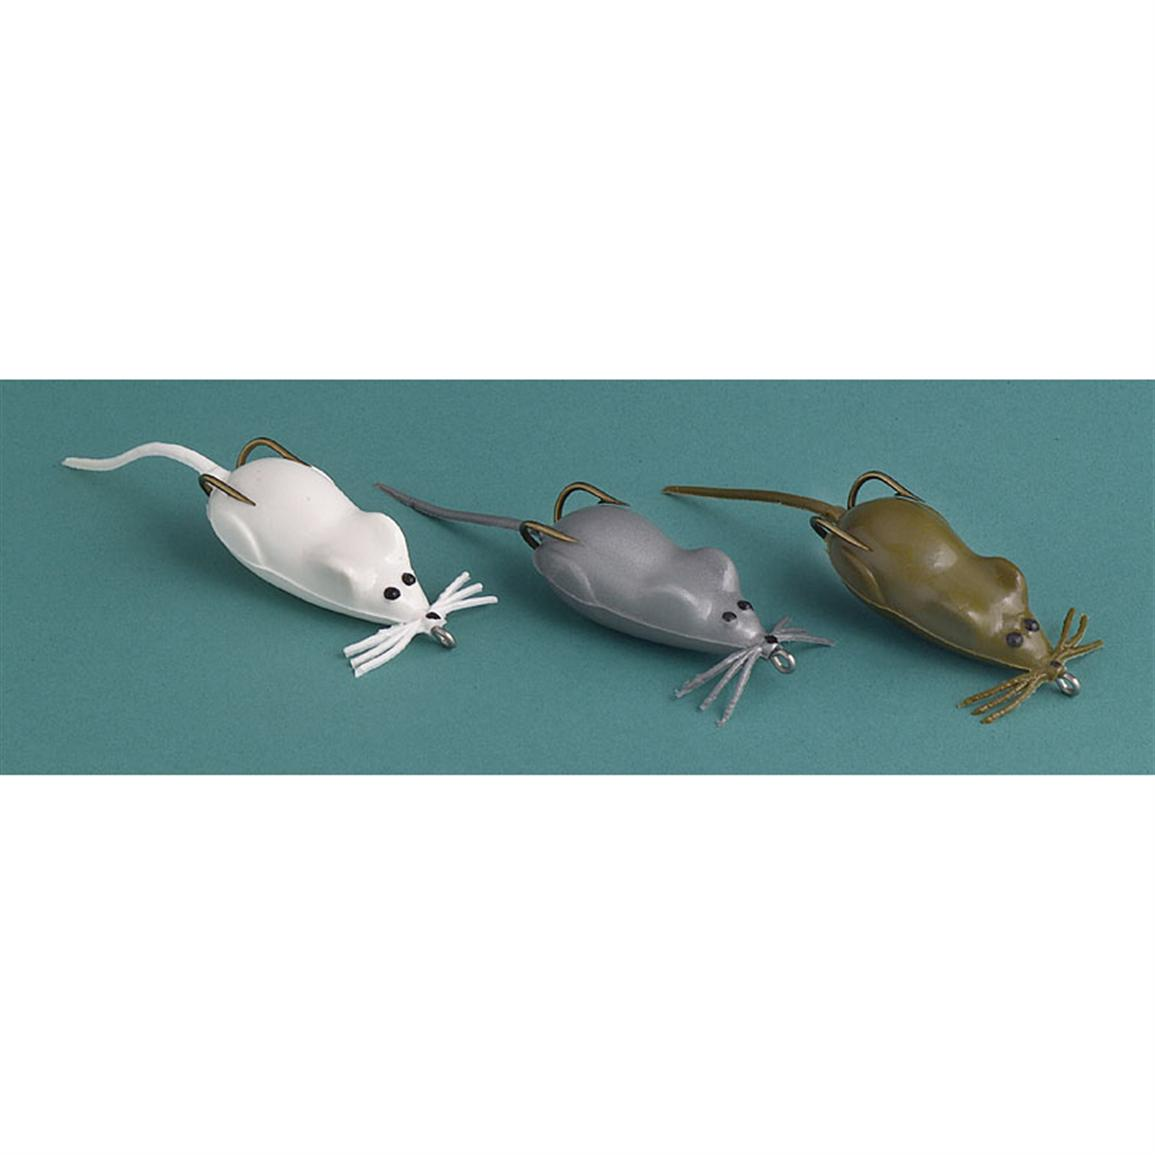 Snagproof® Moss Mouse® Bait